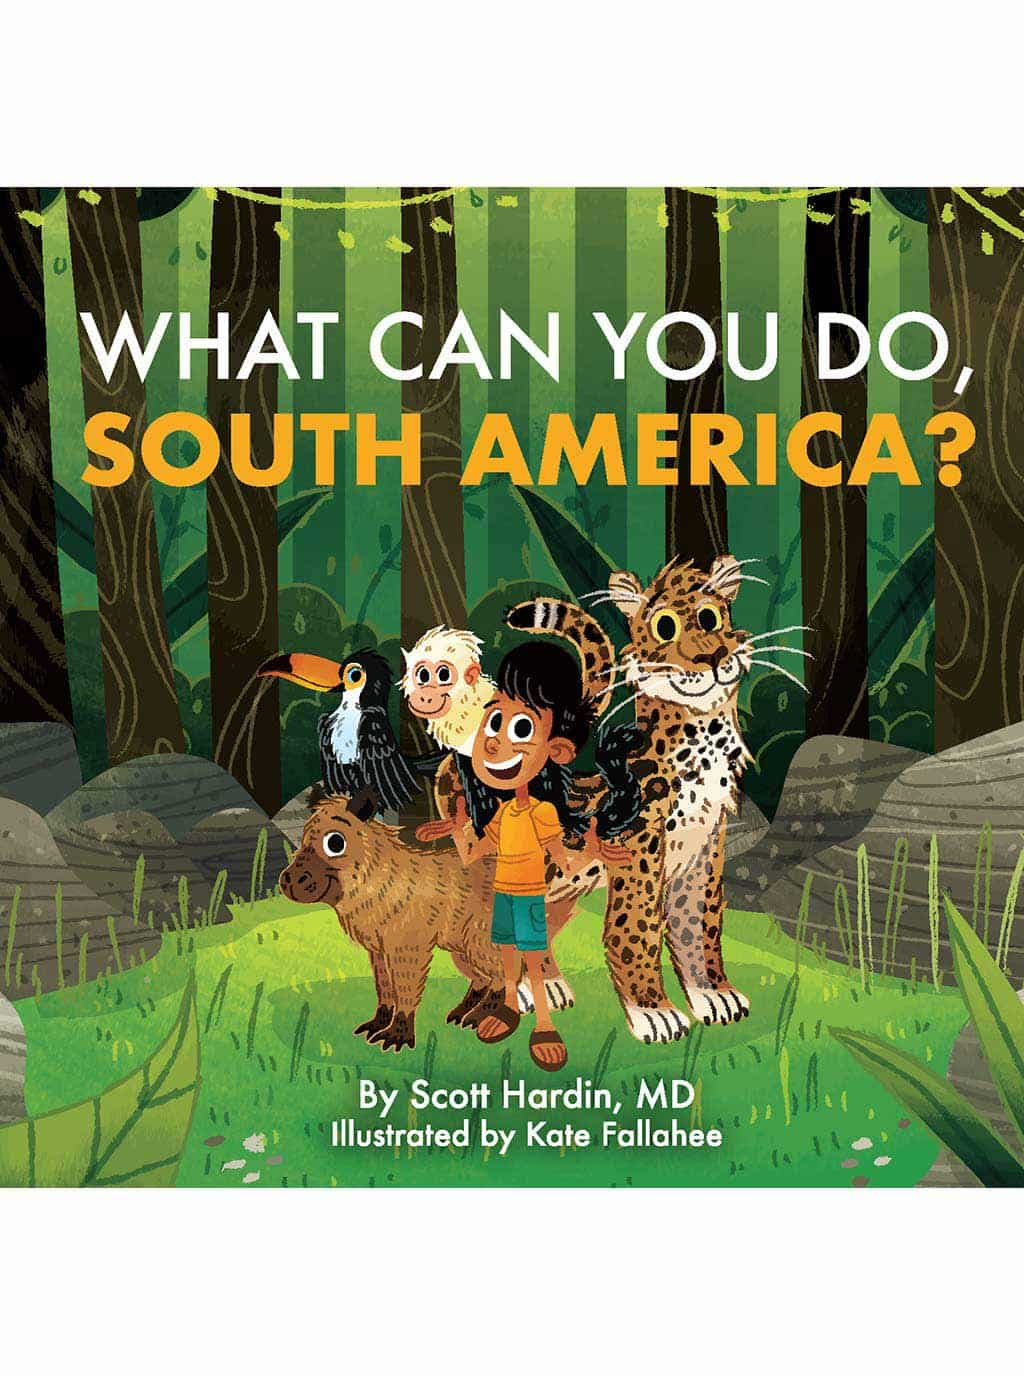 What Can You Do South America?